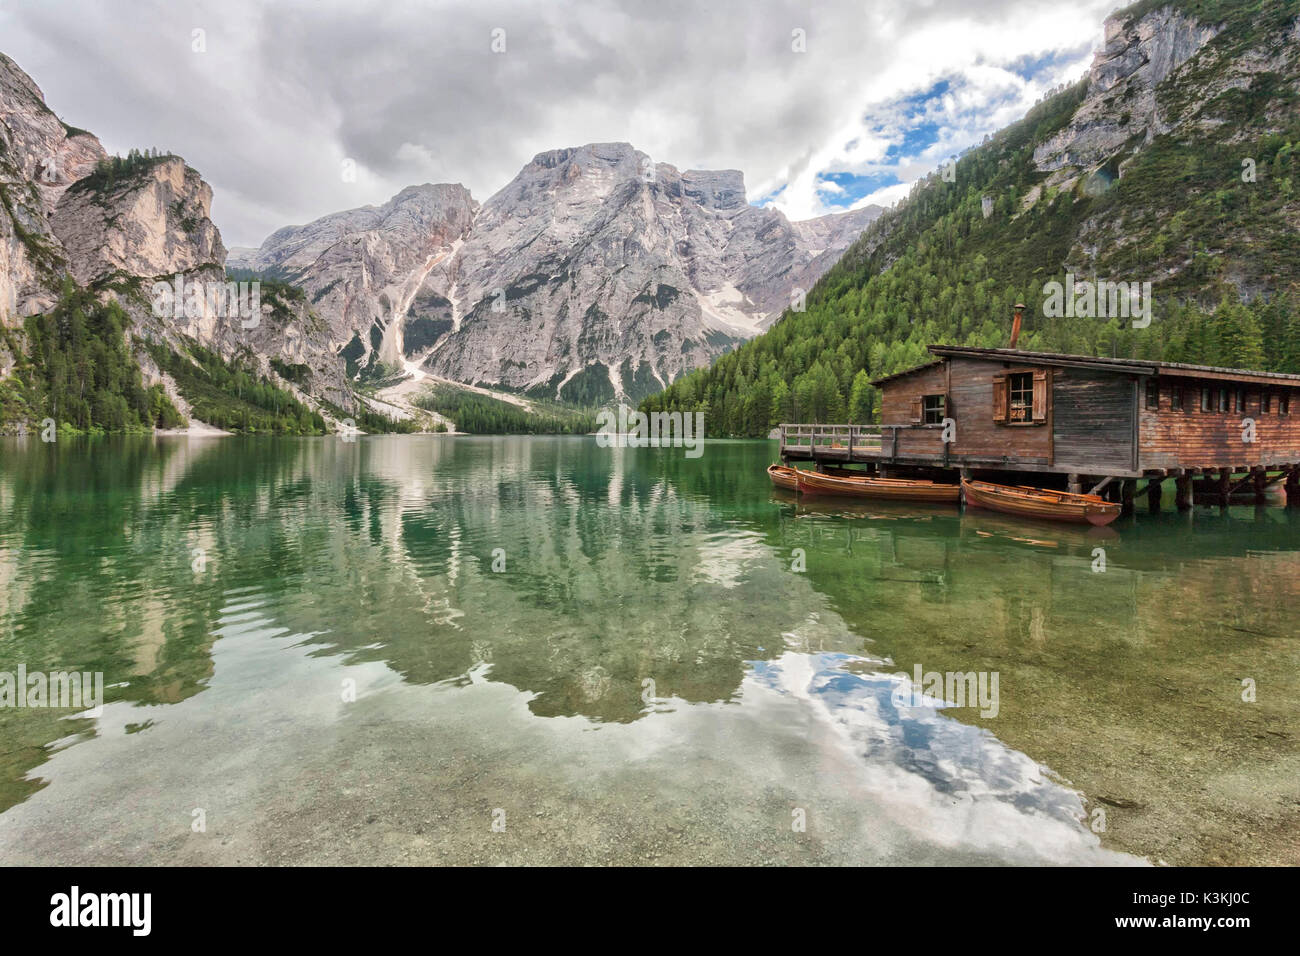 Europe, Italy, Trentino Alto Adige,Bolzano district . Braies lake - Stock Image